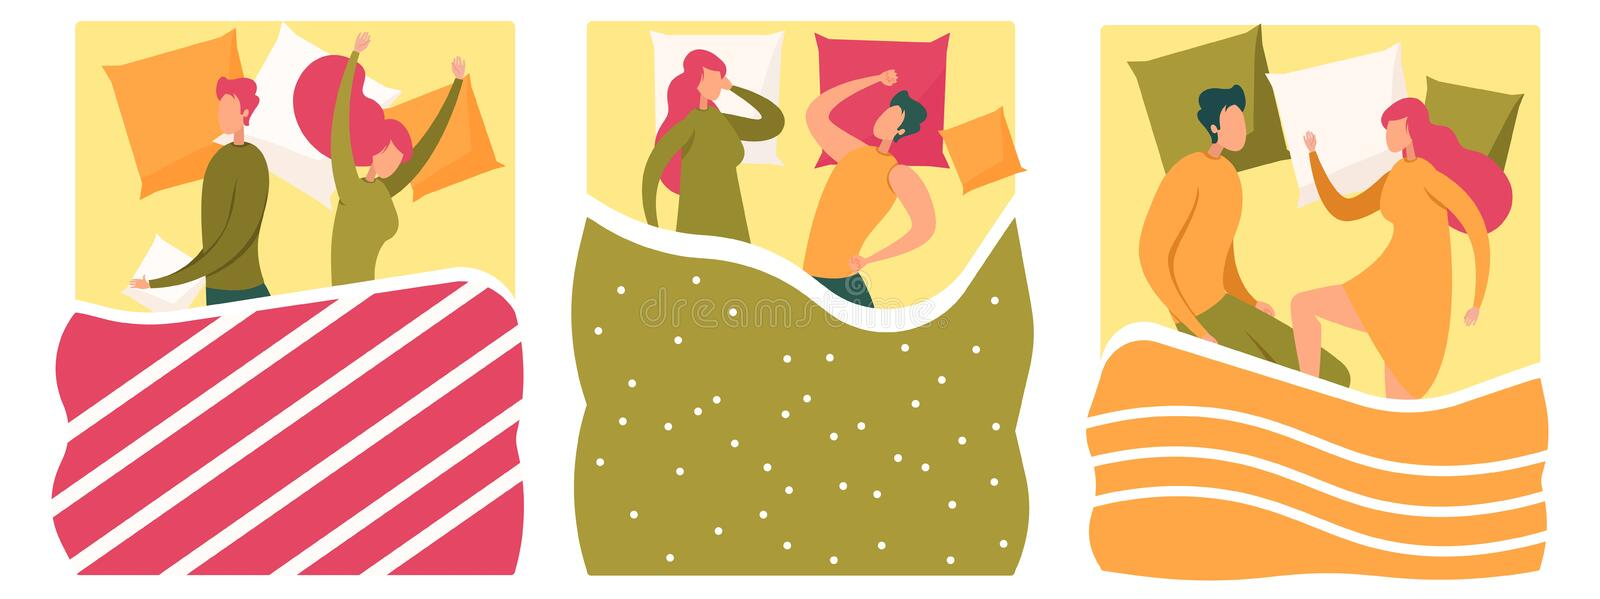 Young Man and Woman Couple Sleeping in Bed Set vector illustration